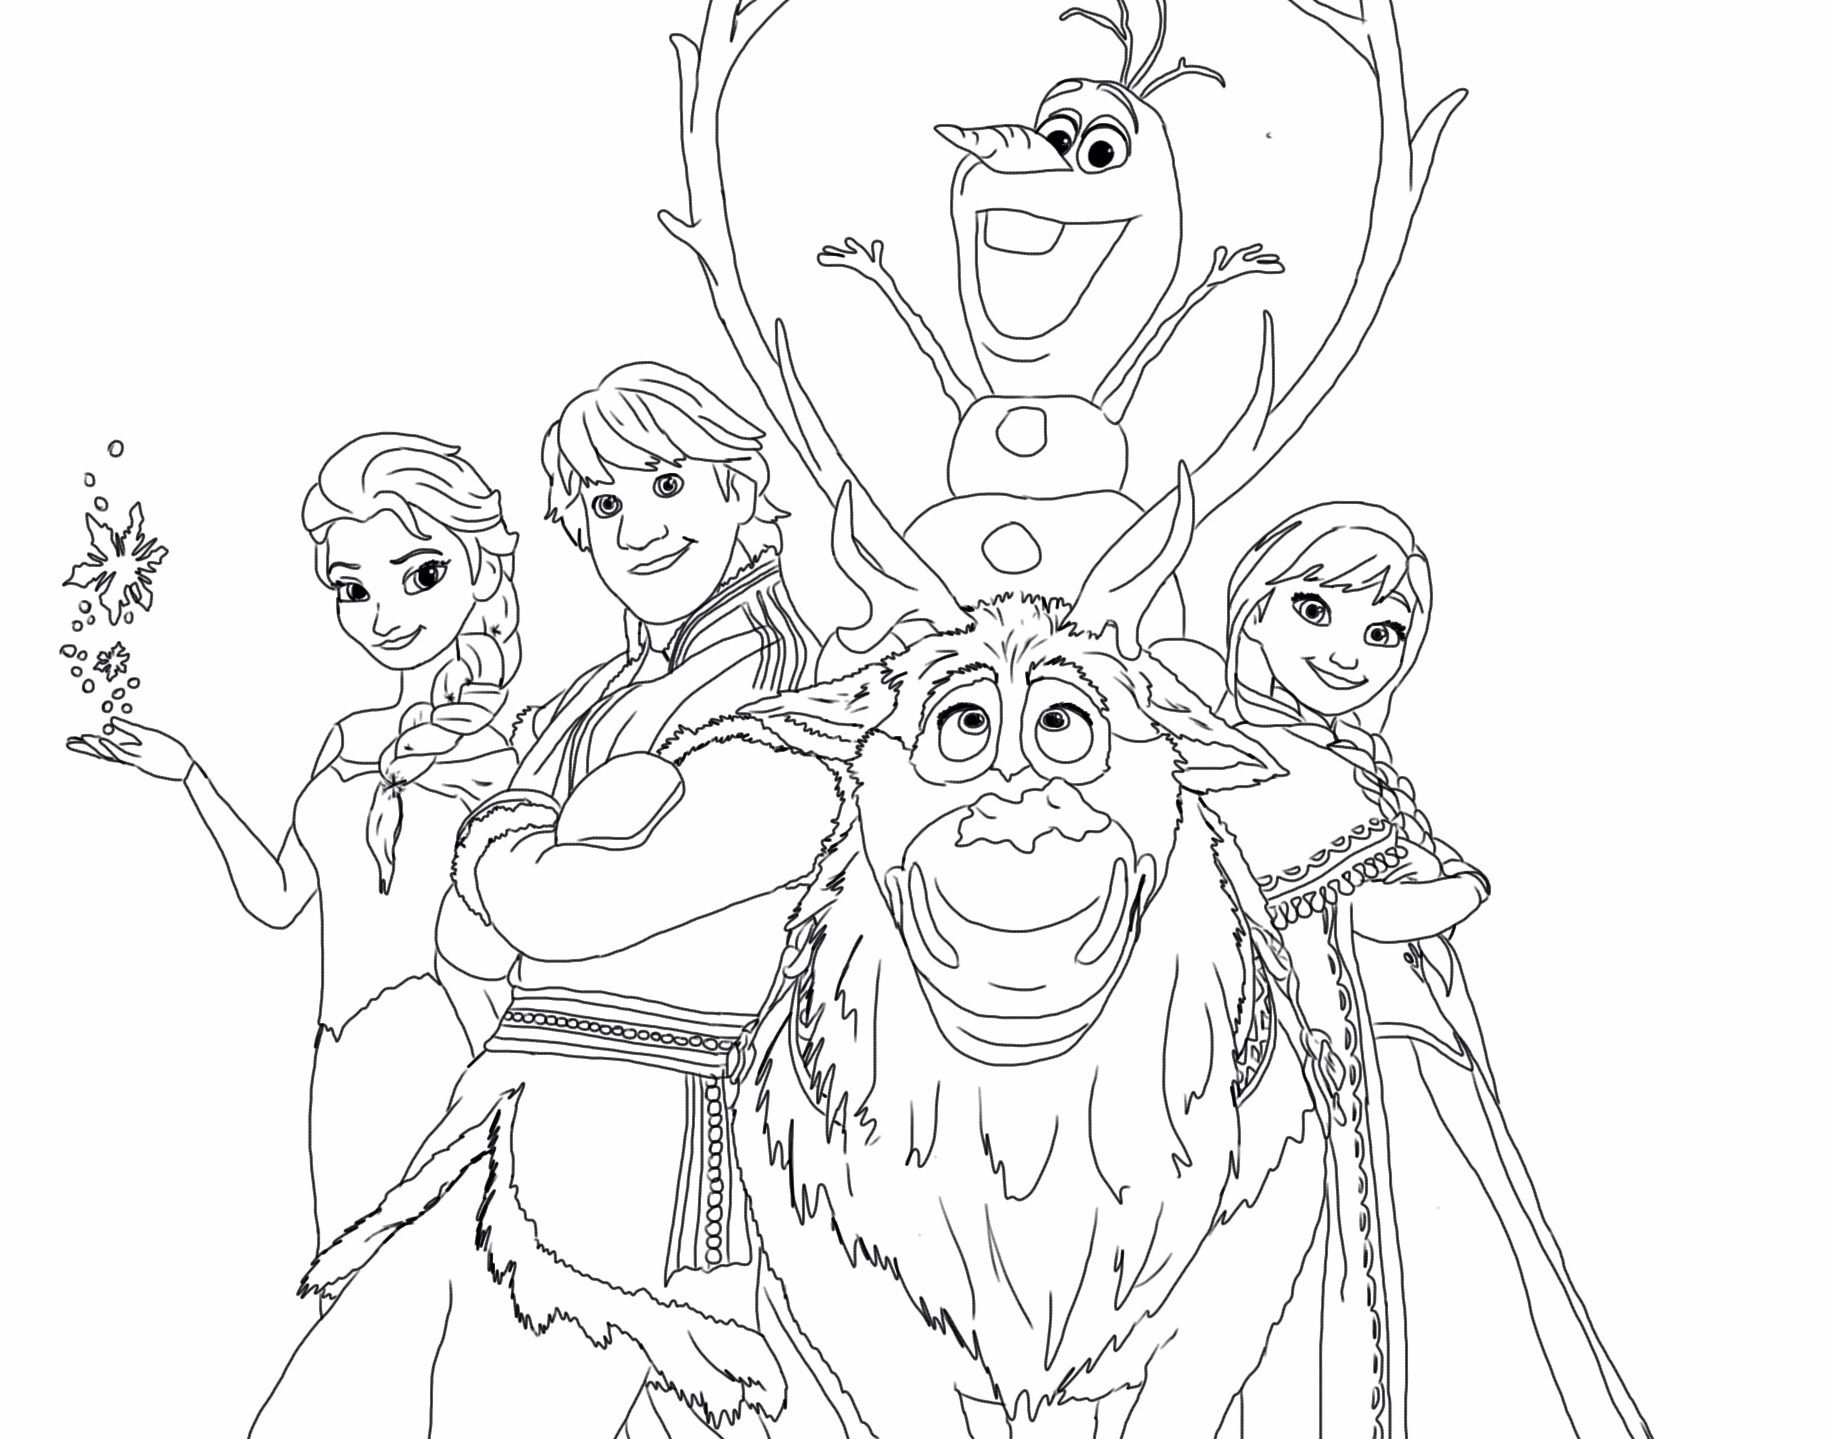 Coloring page of Frozen characters My Free Coloring Pages